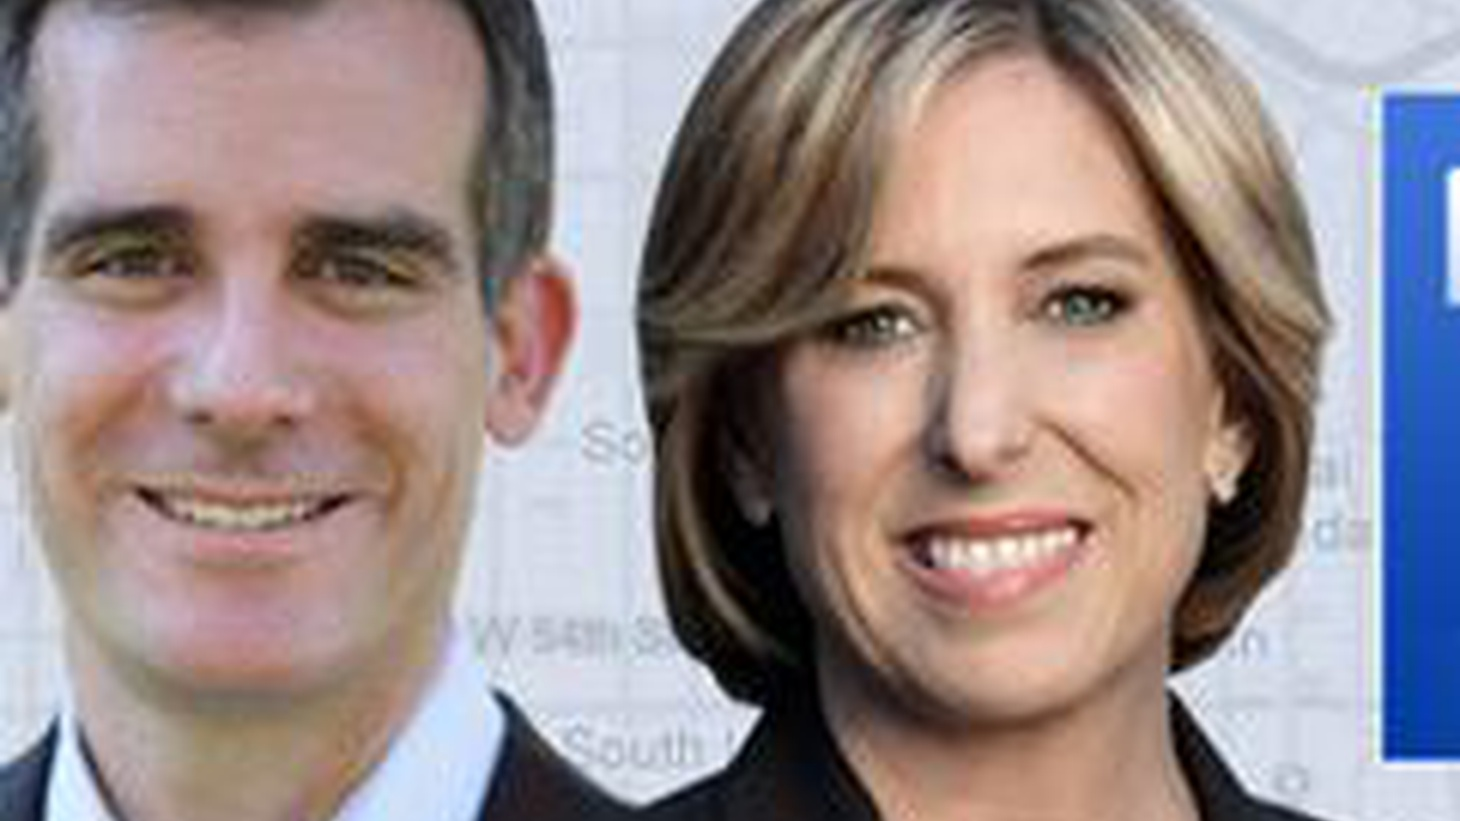 Warren Olney moderates a live debate between Eric Garcetti and Wendy Greuel, candidates for mayor of Los Angeles.